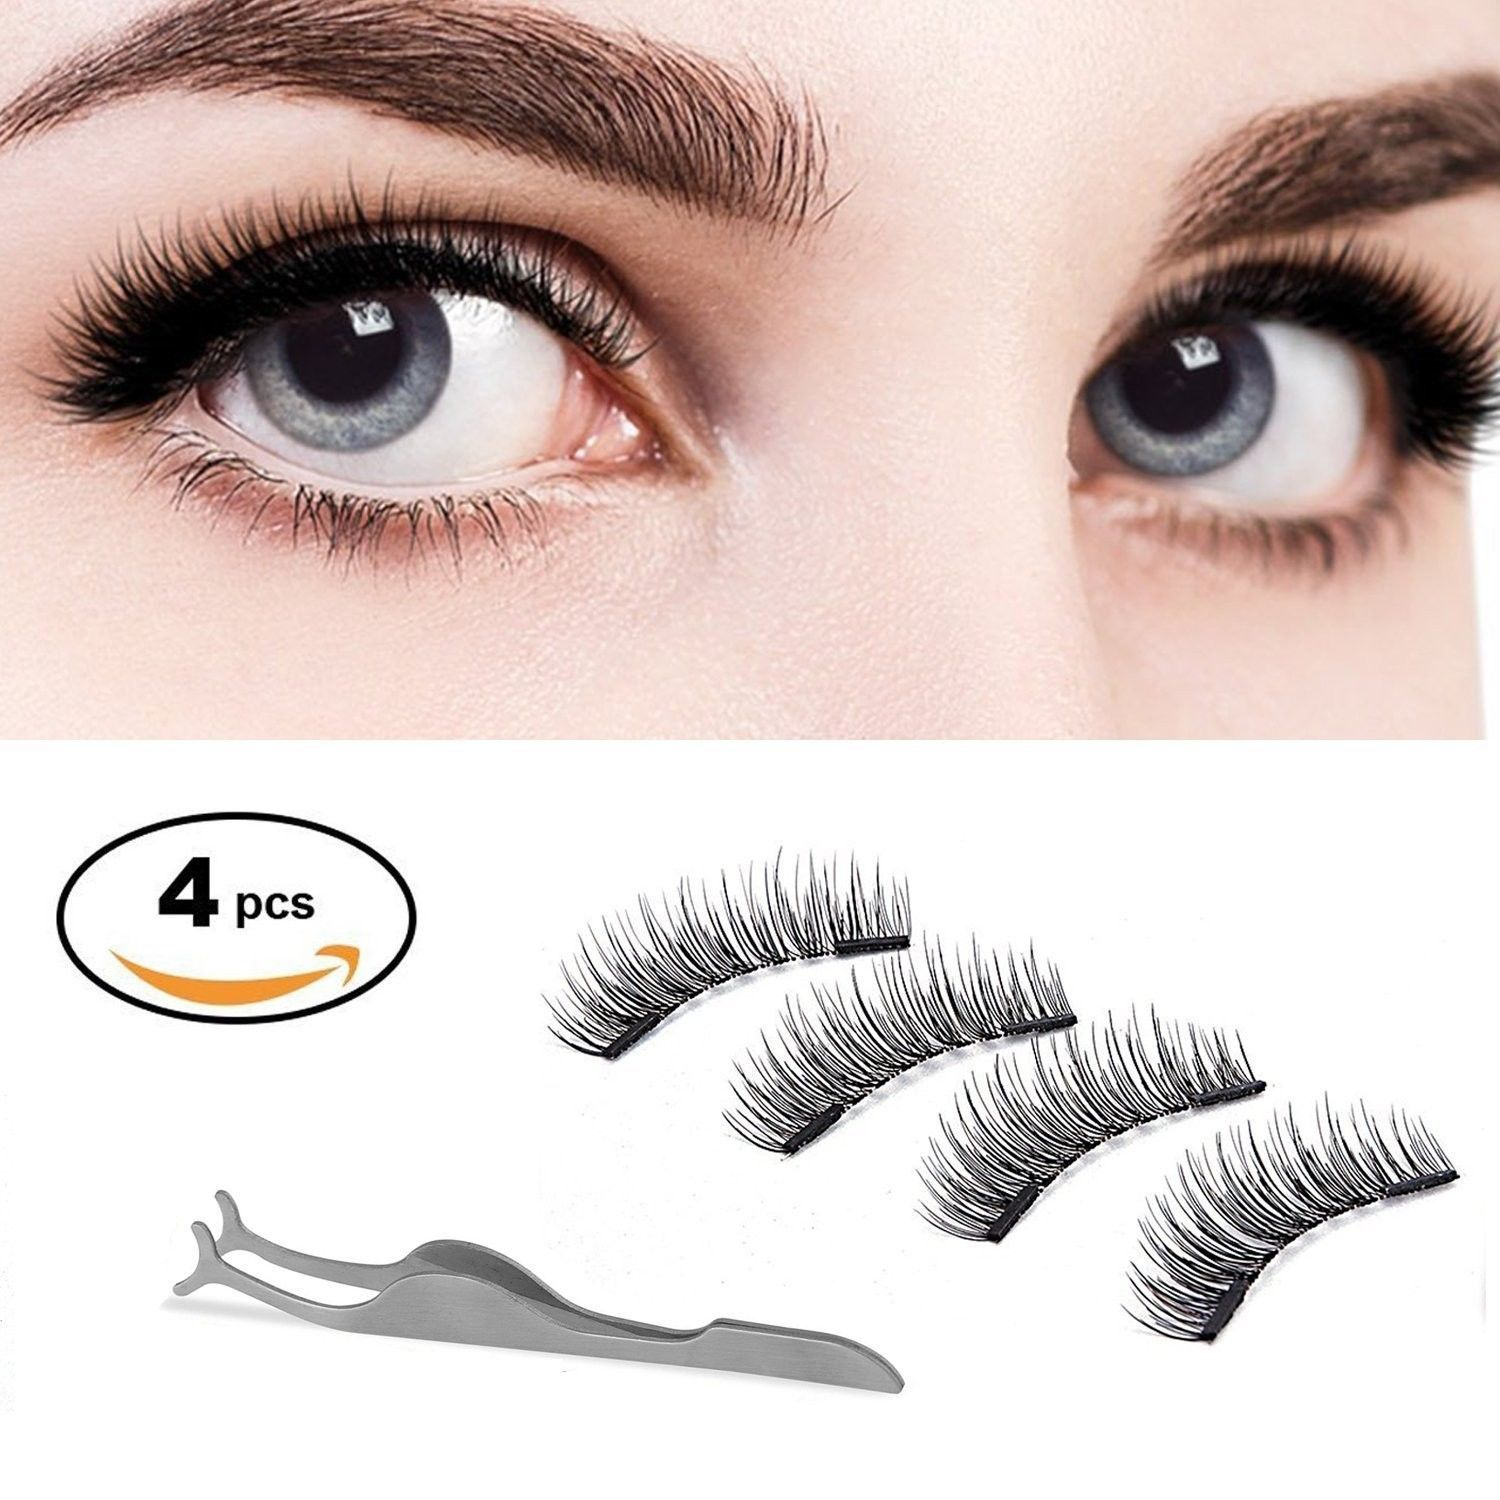 Primary image for Dual Magnetic False Eyelashes -ChANgly No Glue,Natural Handmade Extension Fake E